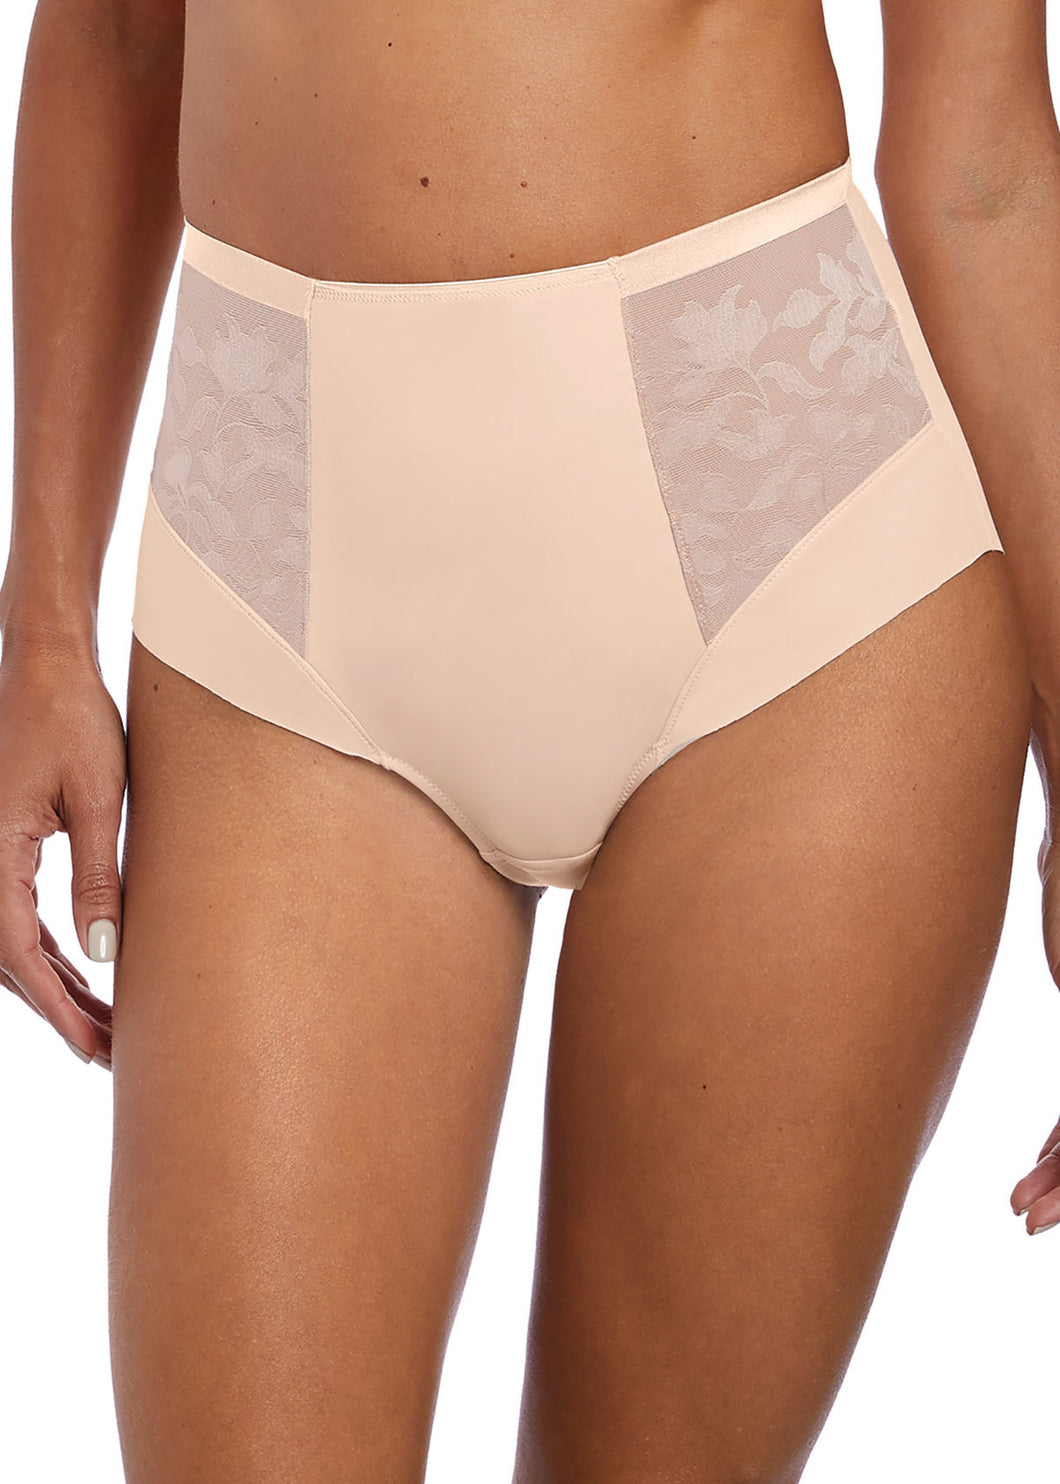 Illusion High Waist Brief FL2988 - Beige